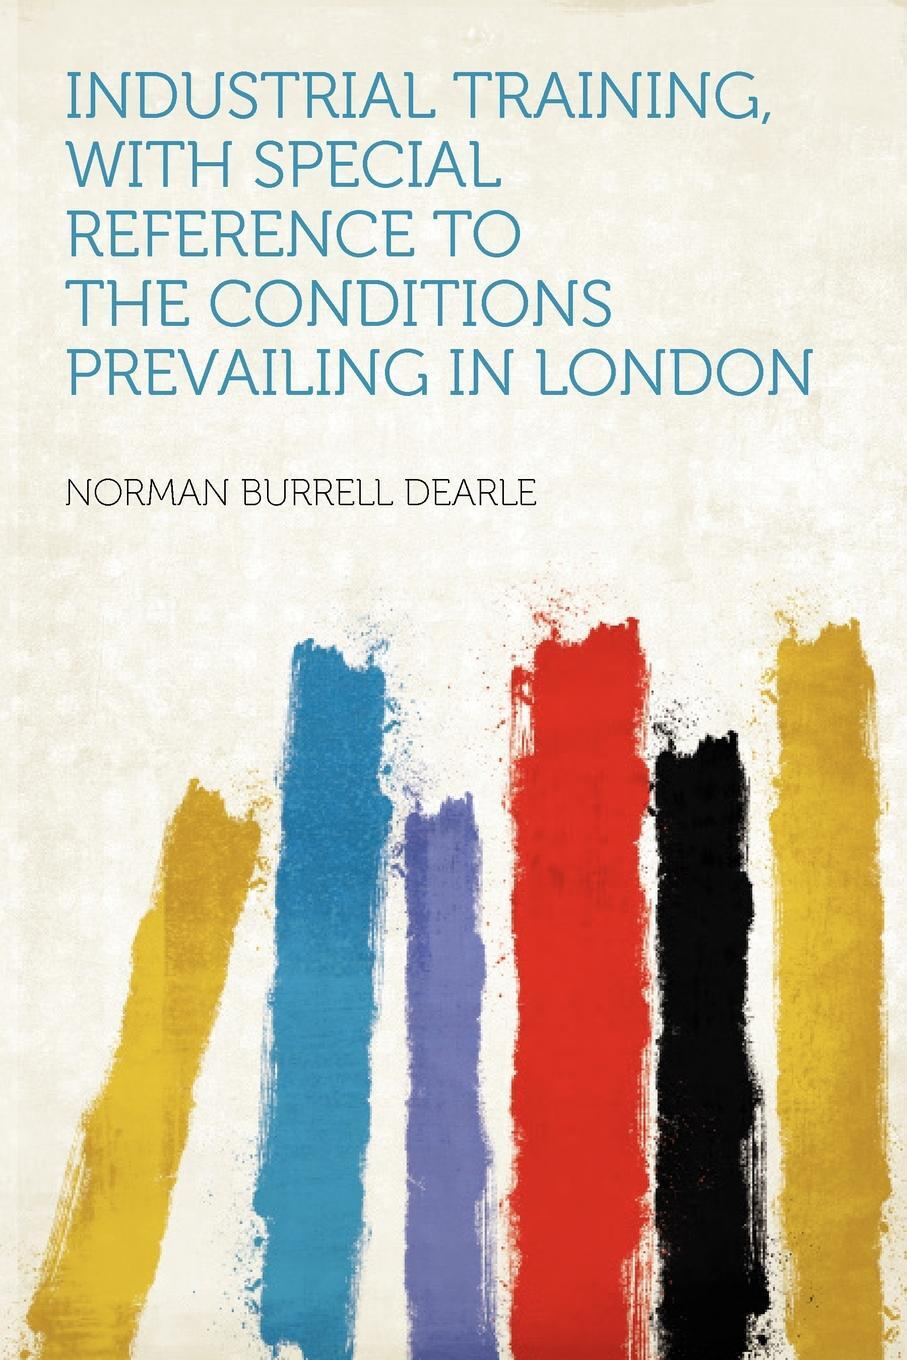 Norman Burrell Dearle. Industrial Training, With Special Reference to the Conditions Prevailing in London